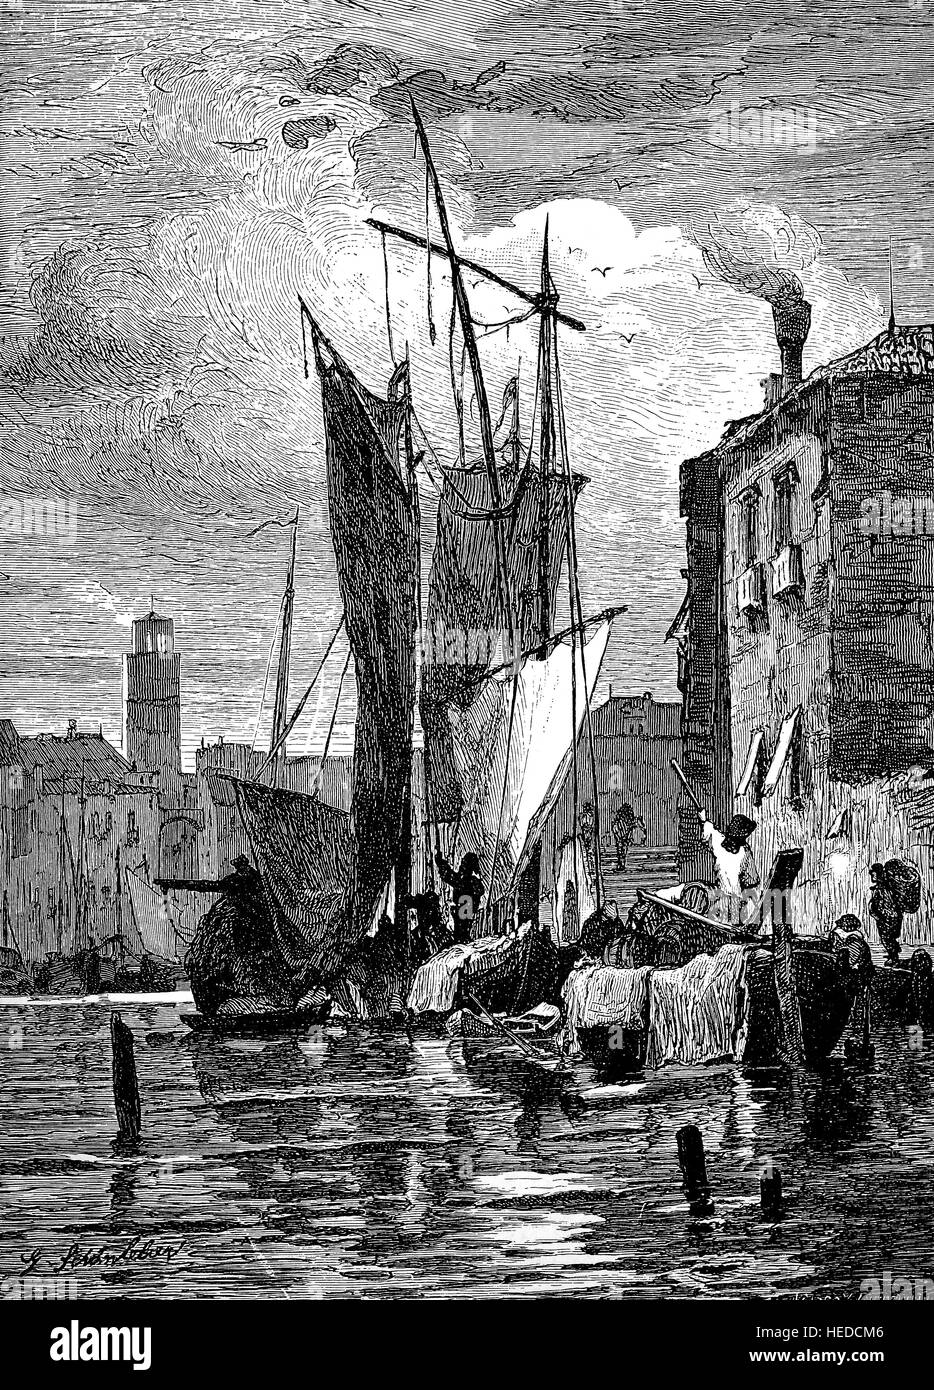 At the island of Giudecca in the Venetian Lagoon, Italy, Harbor scenes, from a woodcut of 1880, digital improved - Stock Image